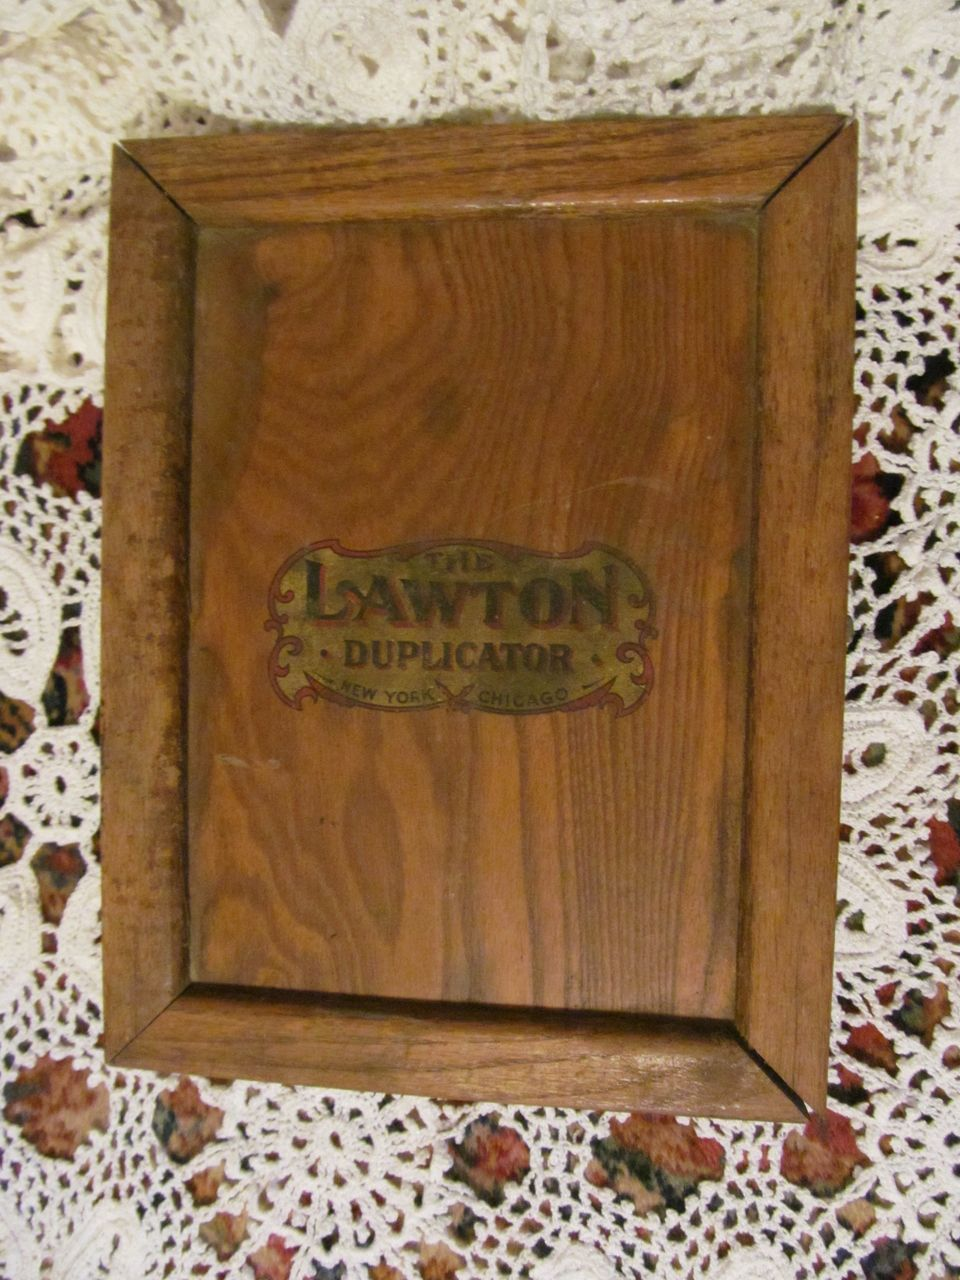 Lawton Duplicator, Copier,Hektograph Mfg & Dup Co